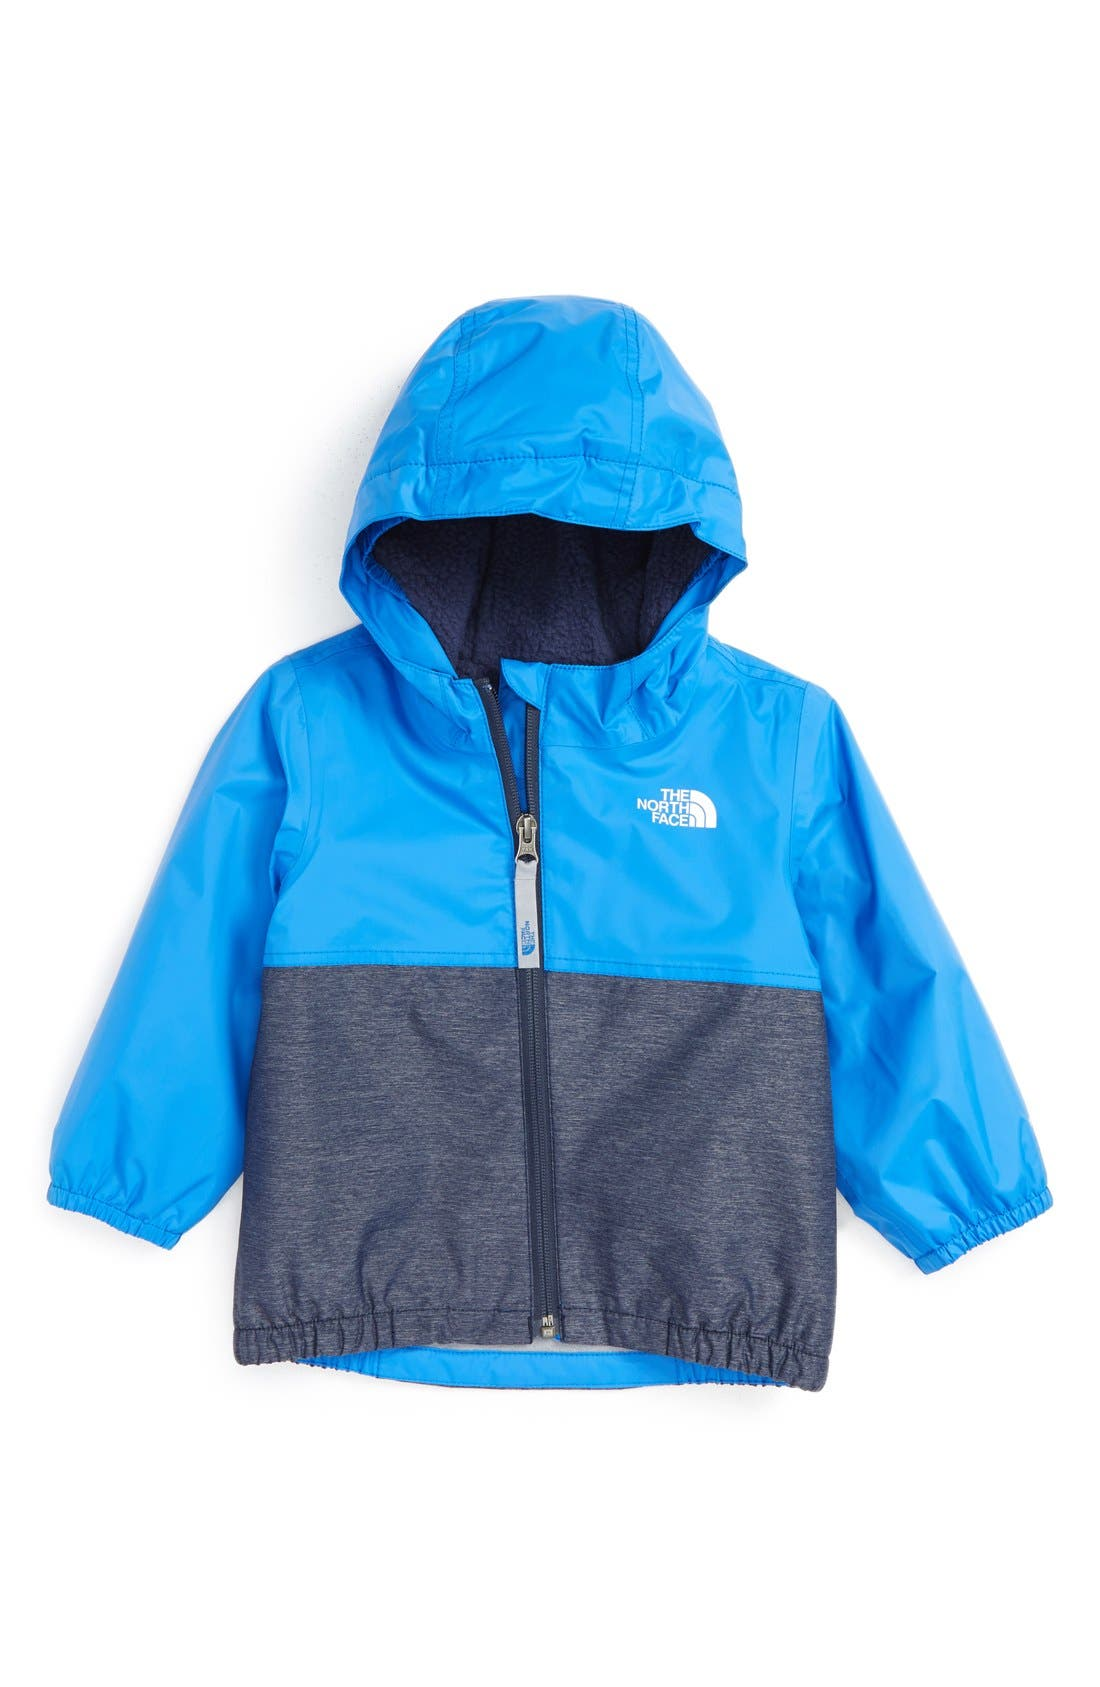 Main Image - The North Face 'Warm Storm' Hooded Waterproof Jacket (Baby Boys)